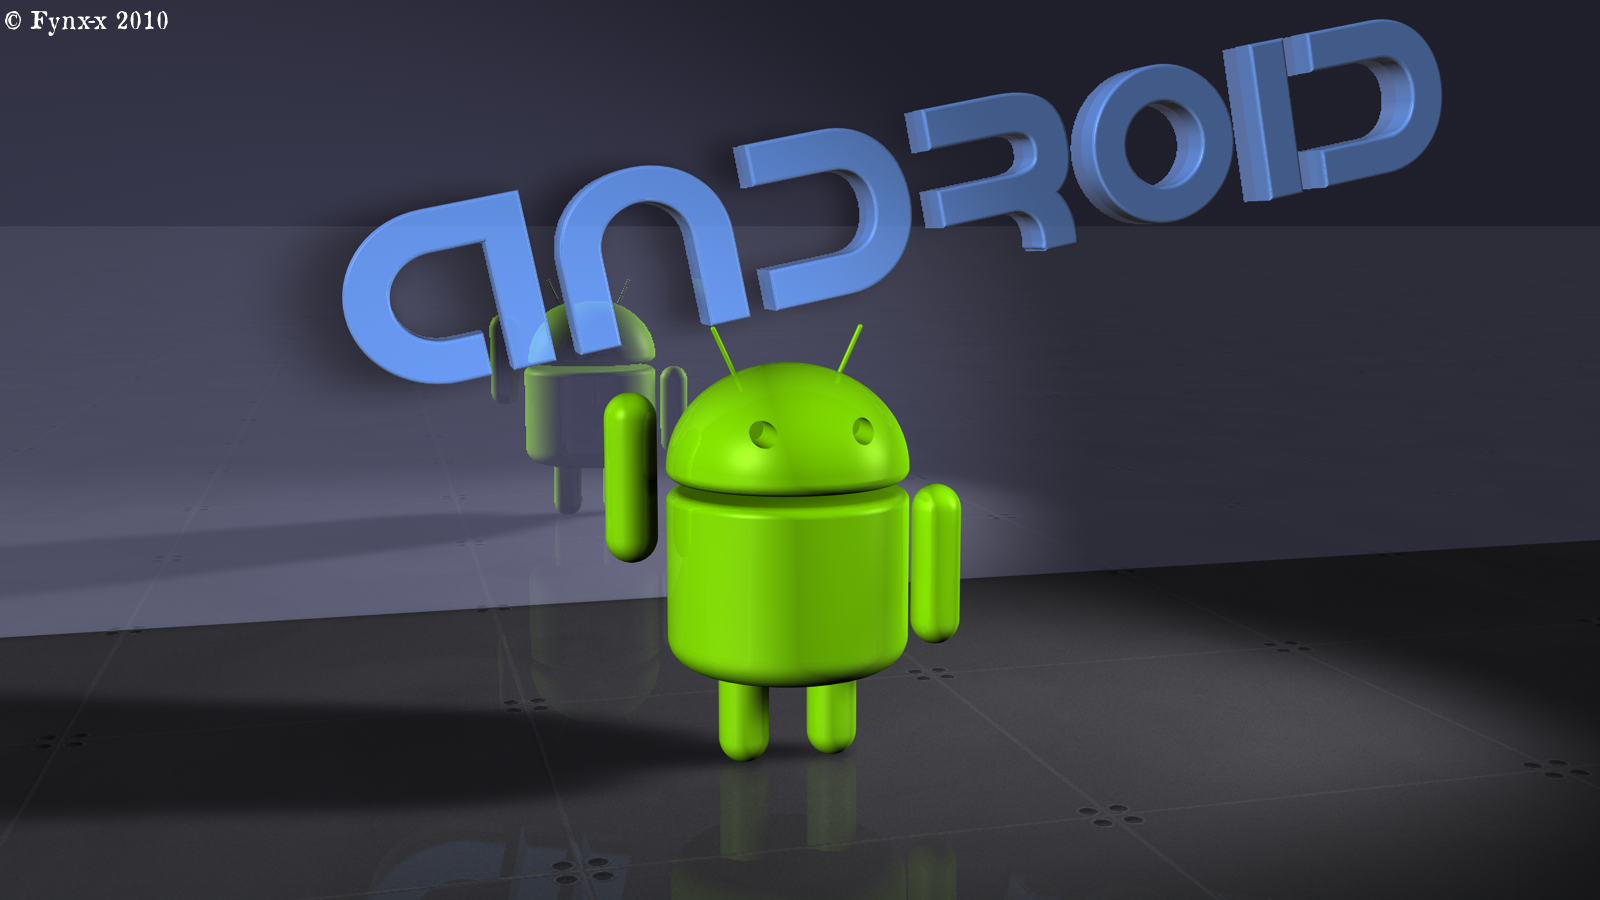 3d wallpaper download for android mobile,green,animation,text,font,technology